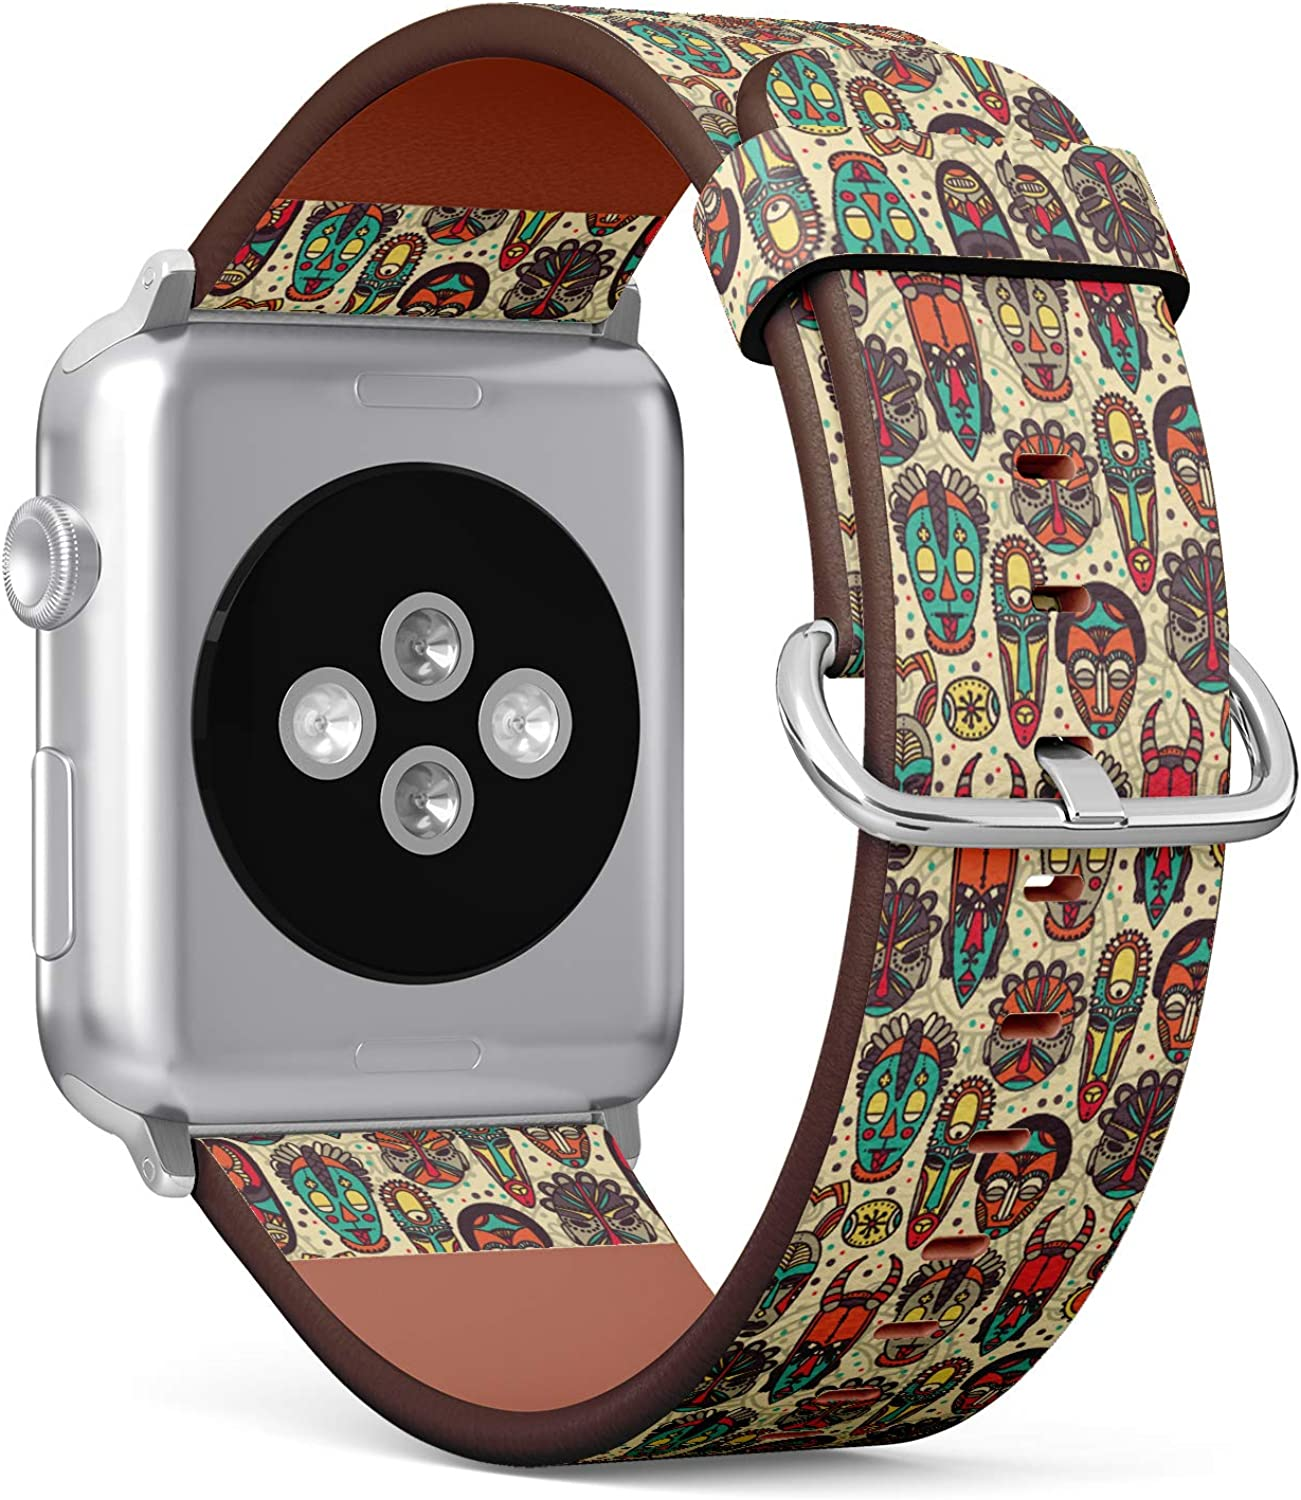 (Pattern with Tribal African Masks) Patterned Leather Wristband Strap for Apple Watch Series 4/3/2/1 gen,Replacement for iWatch 42mm / 44mm Bands